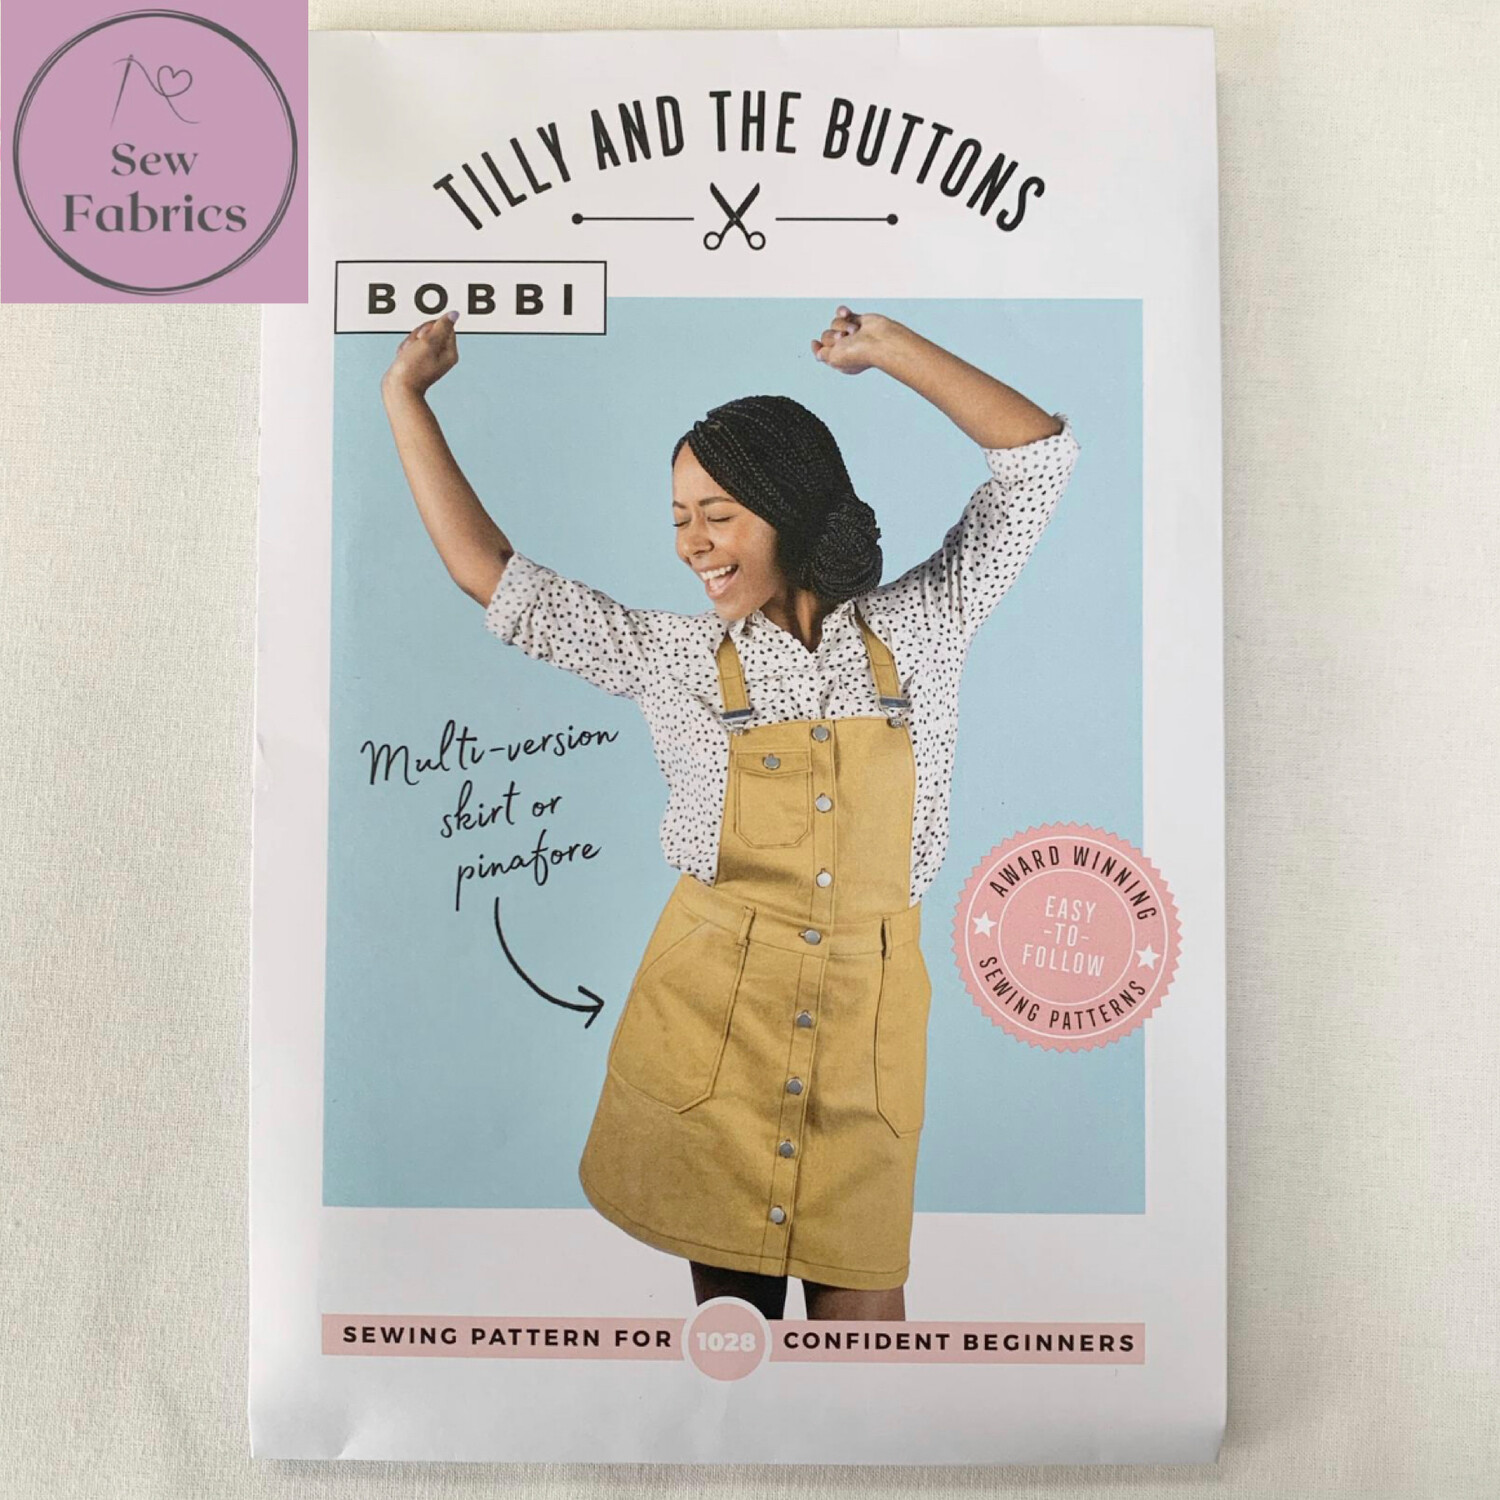 Bobbi Skirt and Pinafore Printed Sewing Pattern by Tilly and The Buttons